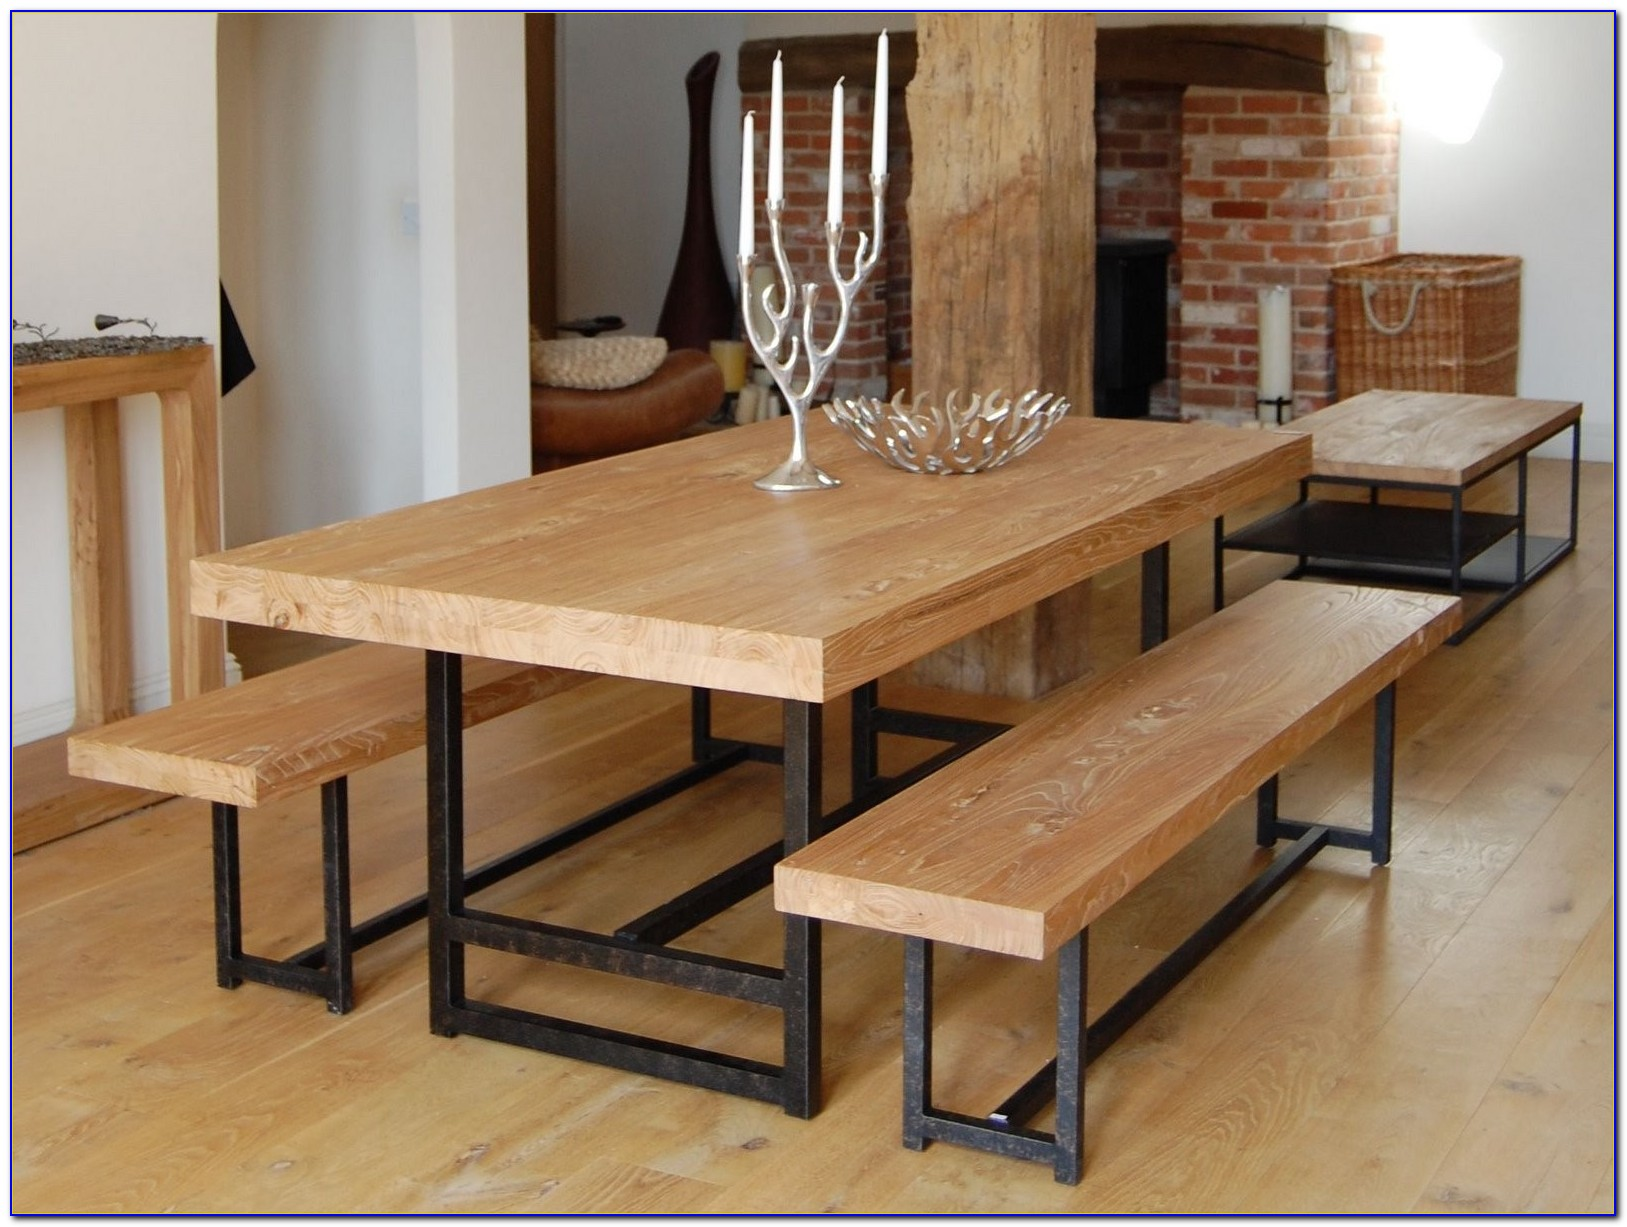 Rustic Benches For Dining Table